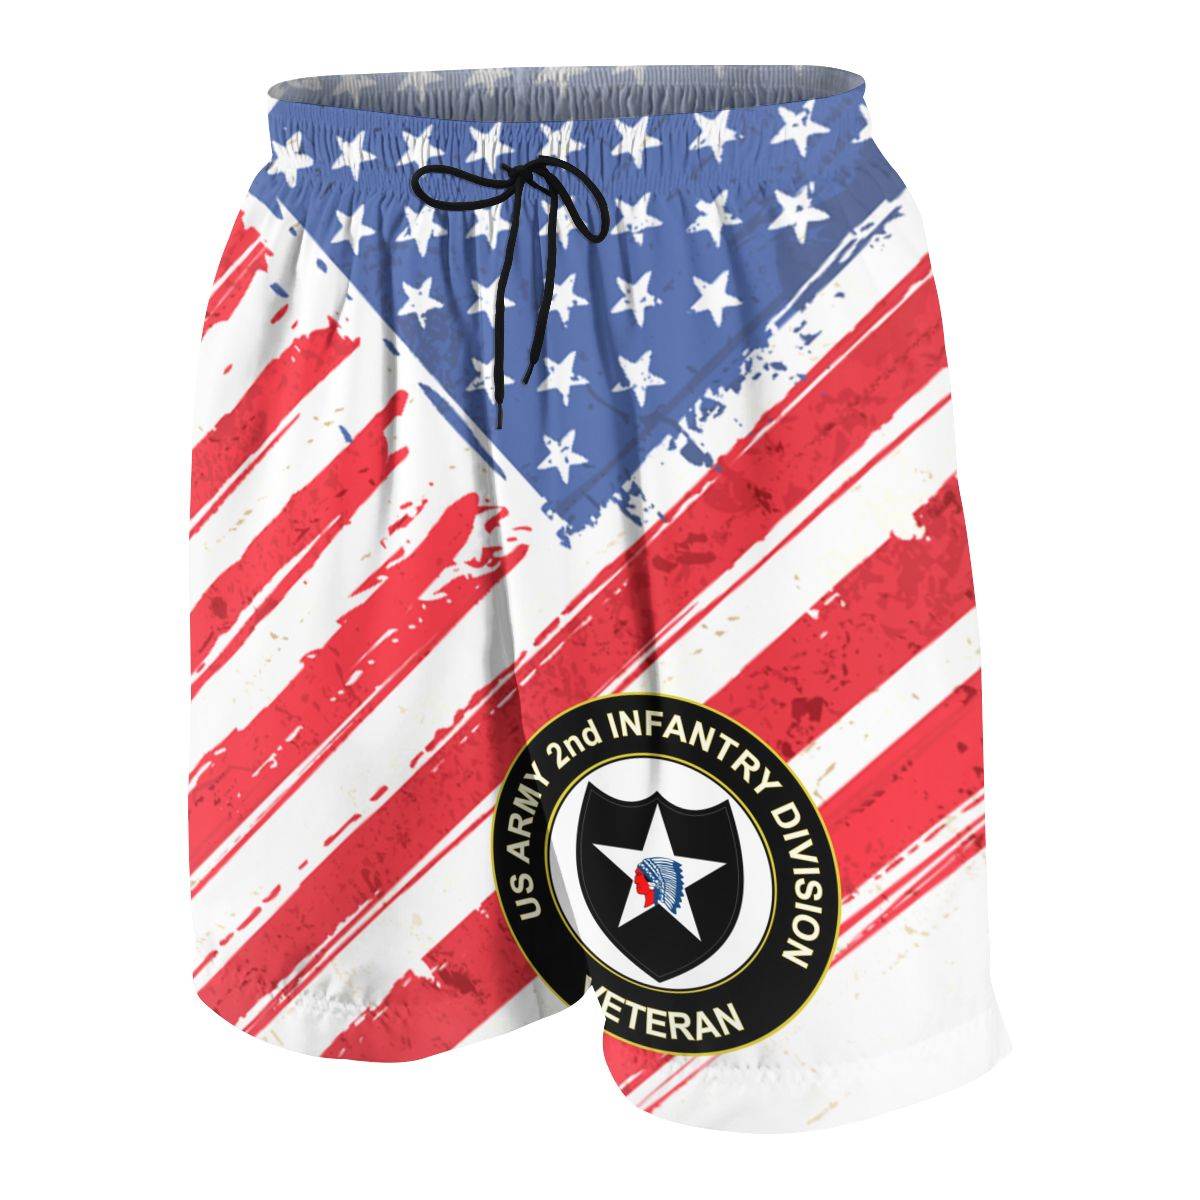 US Army Veteran 2nd Infantry Division Summer Young Shorts Cotton For Beach Short Sports Pants 3D Print Elastic Fashion Leisure